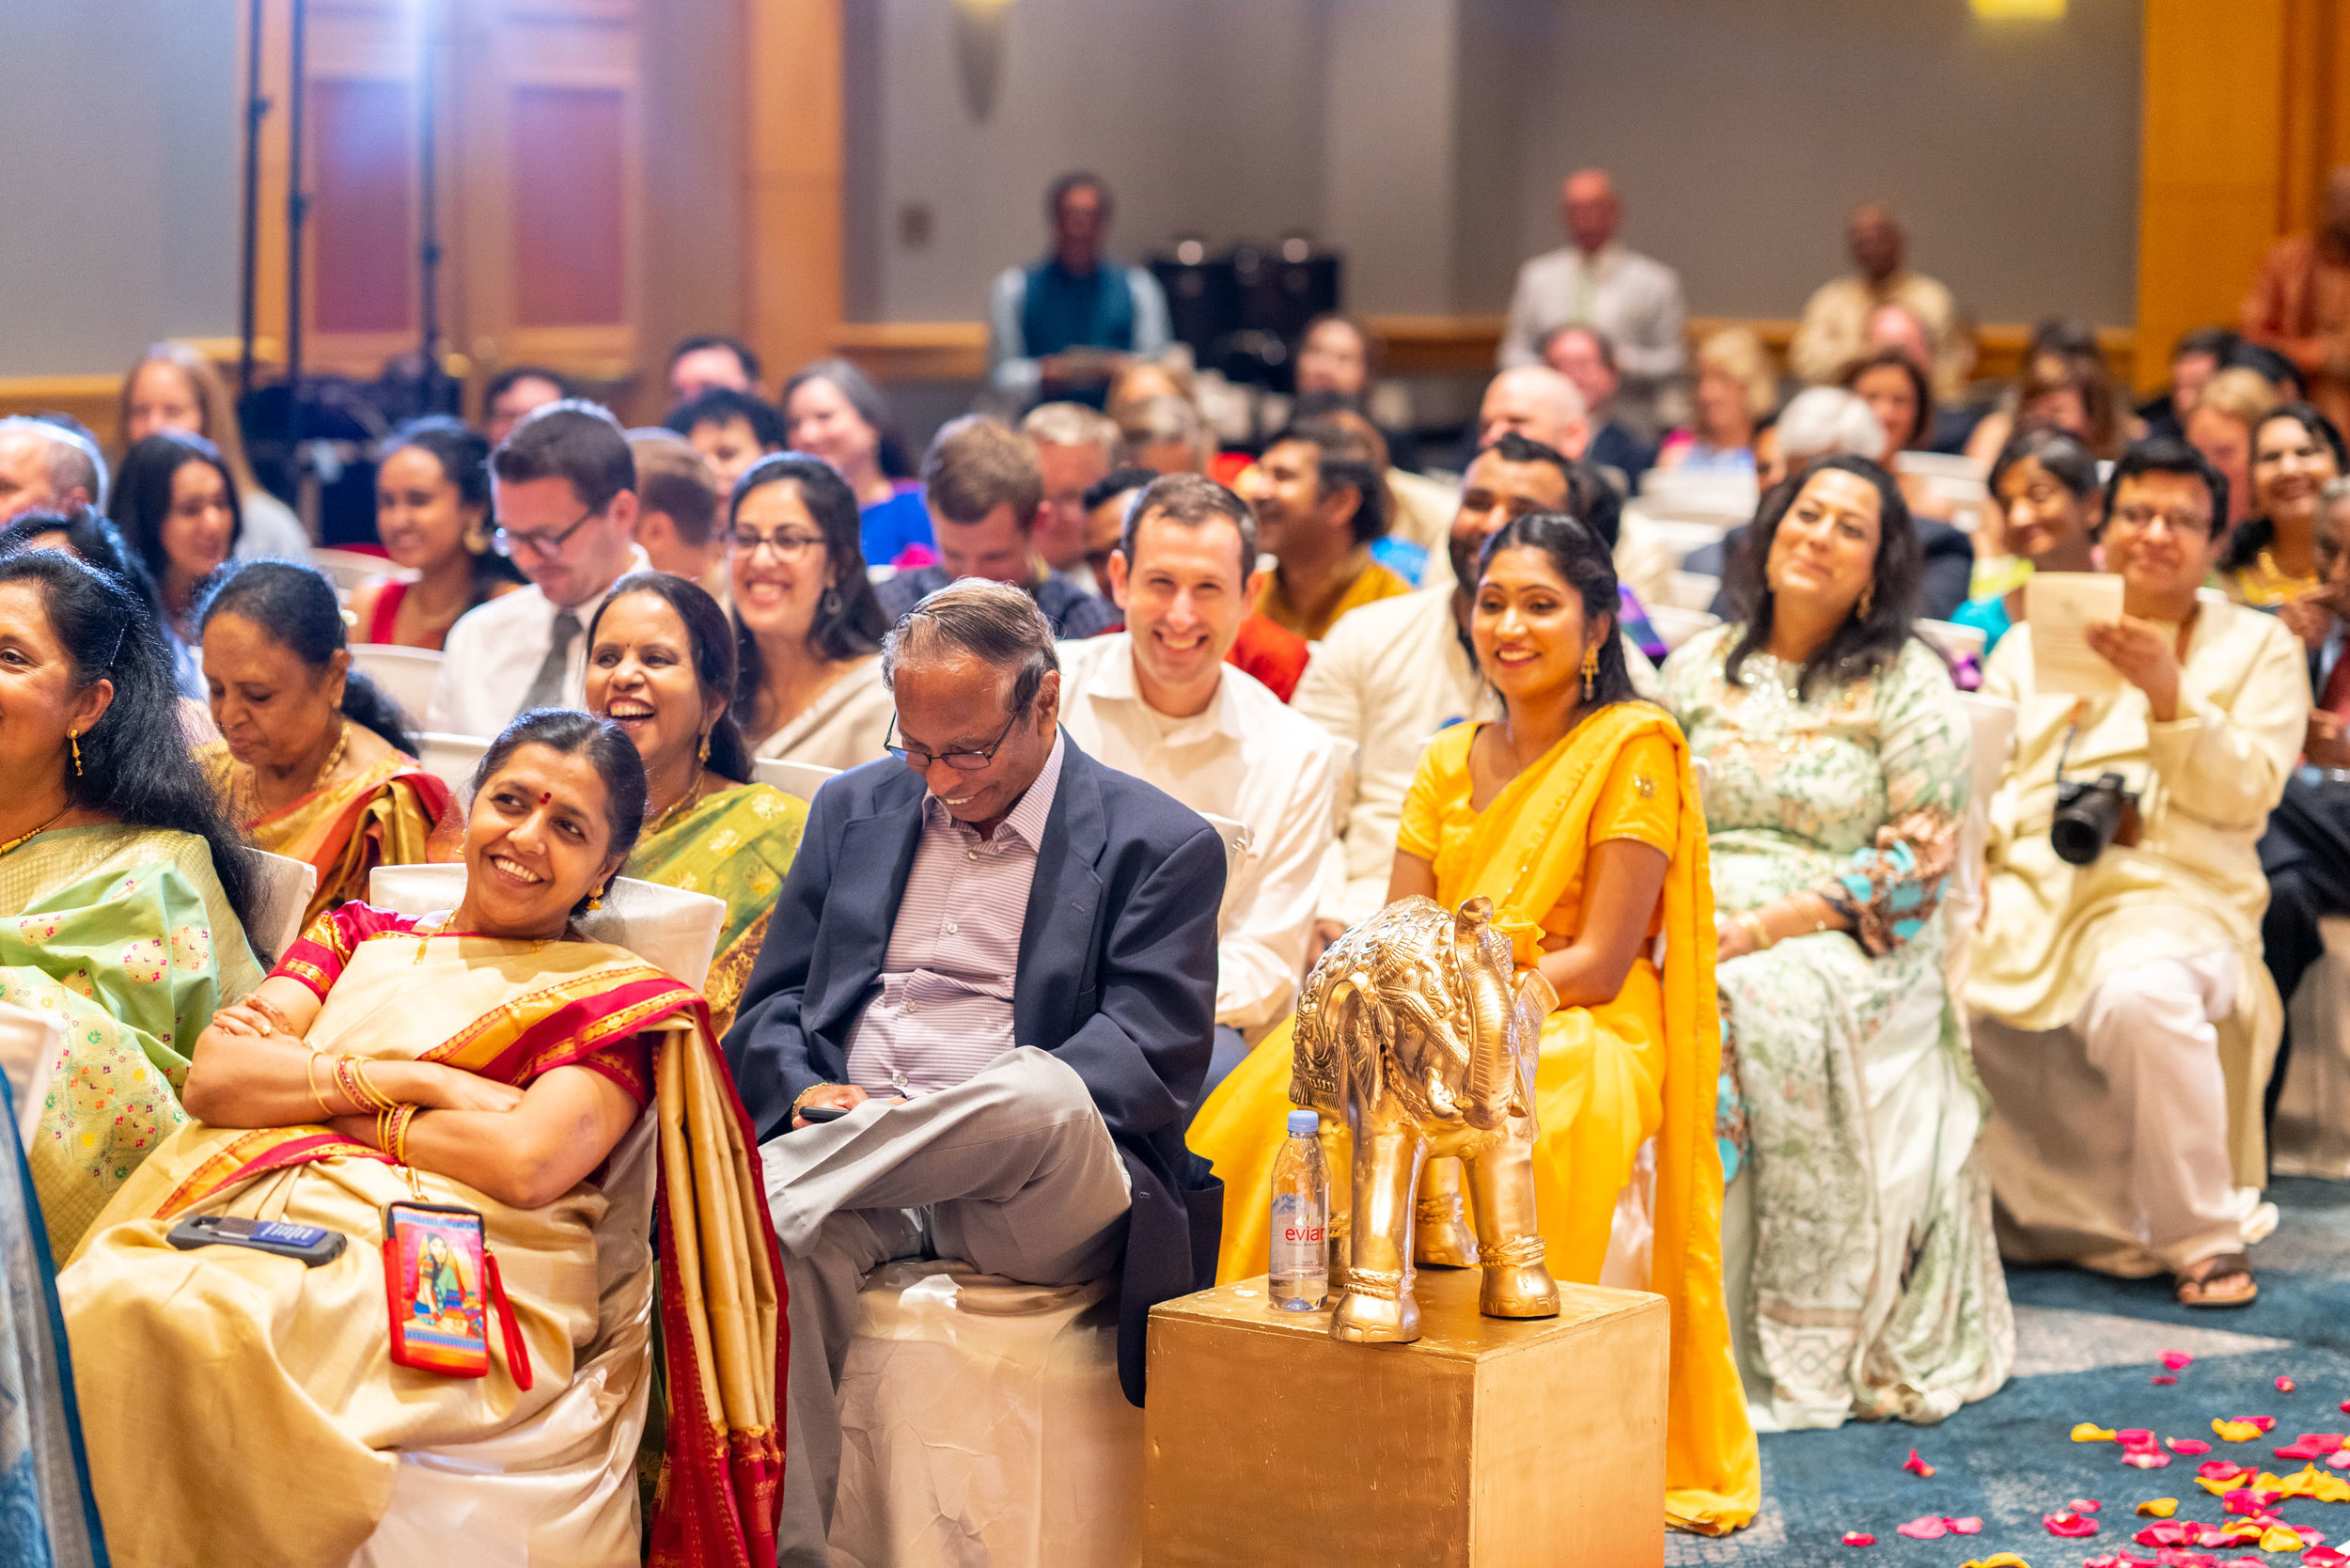 Crowd laughing at bride's vows during indian wedding in dc